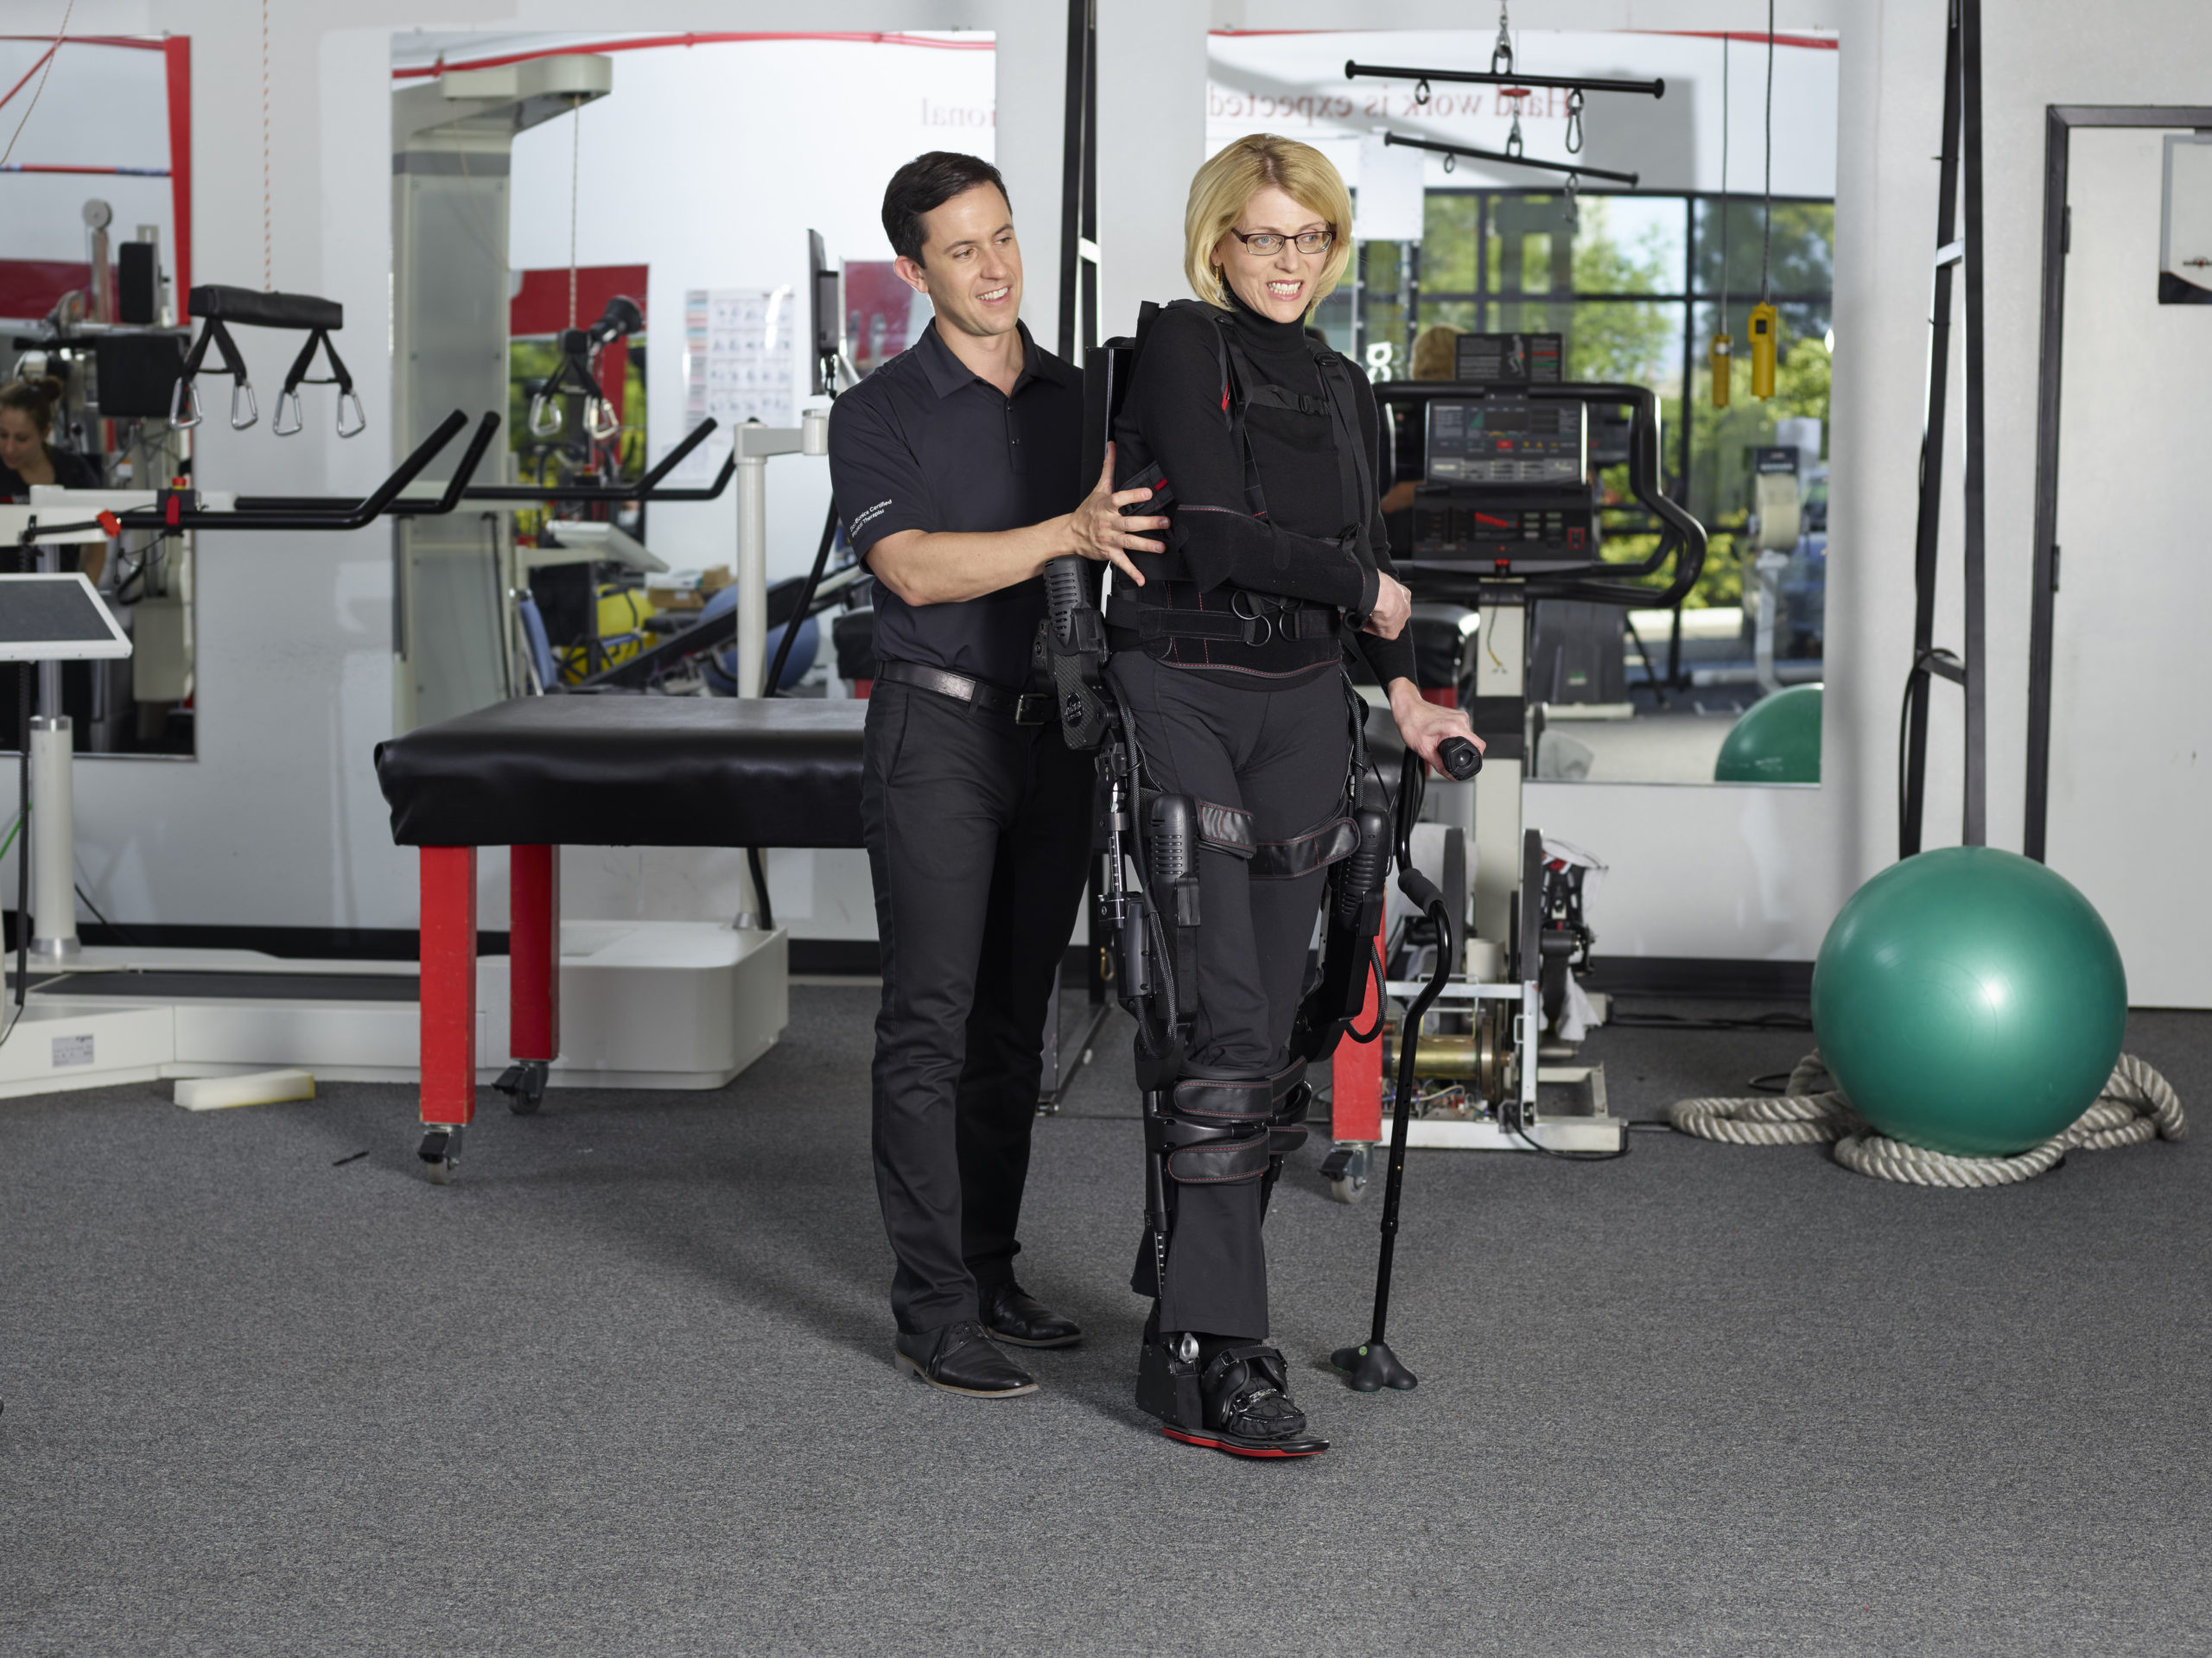 Image of woman taking Ekso Bionics assisted steps with the help of a physical therapist.